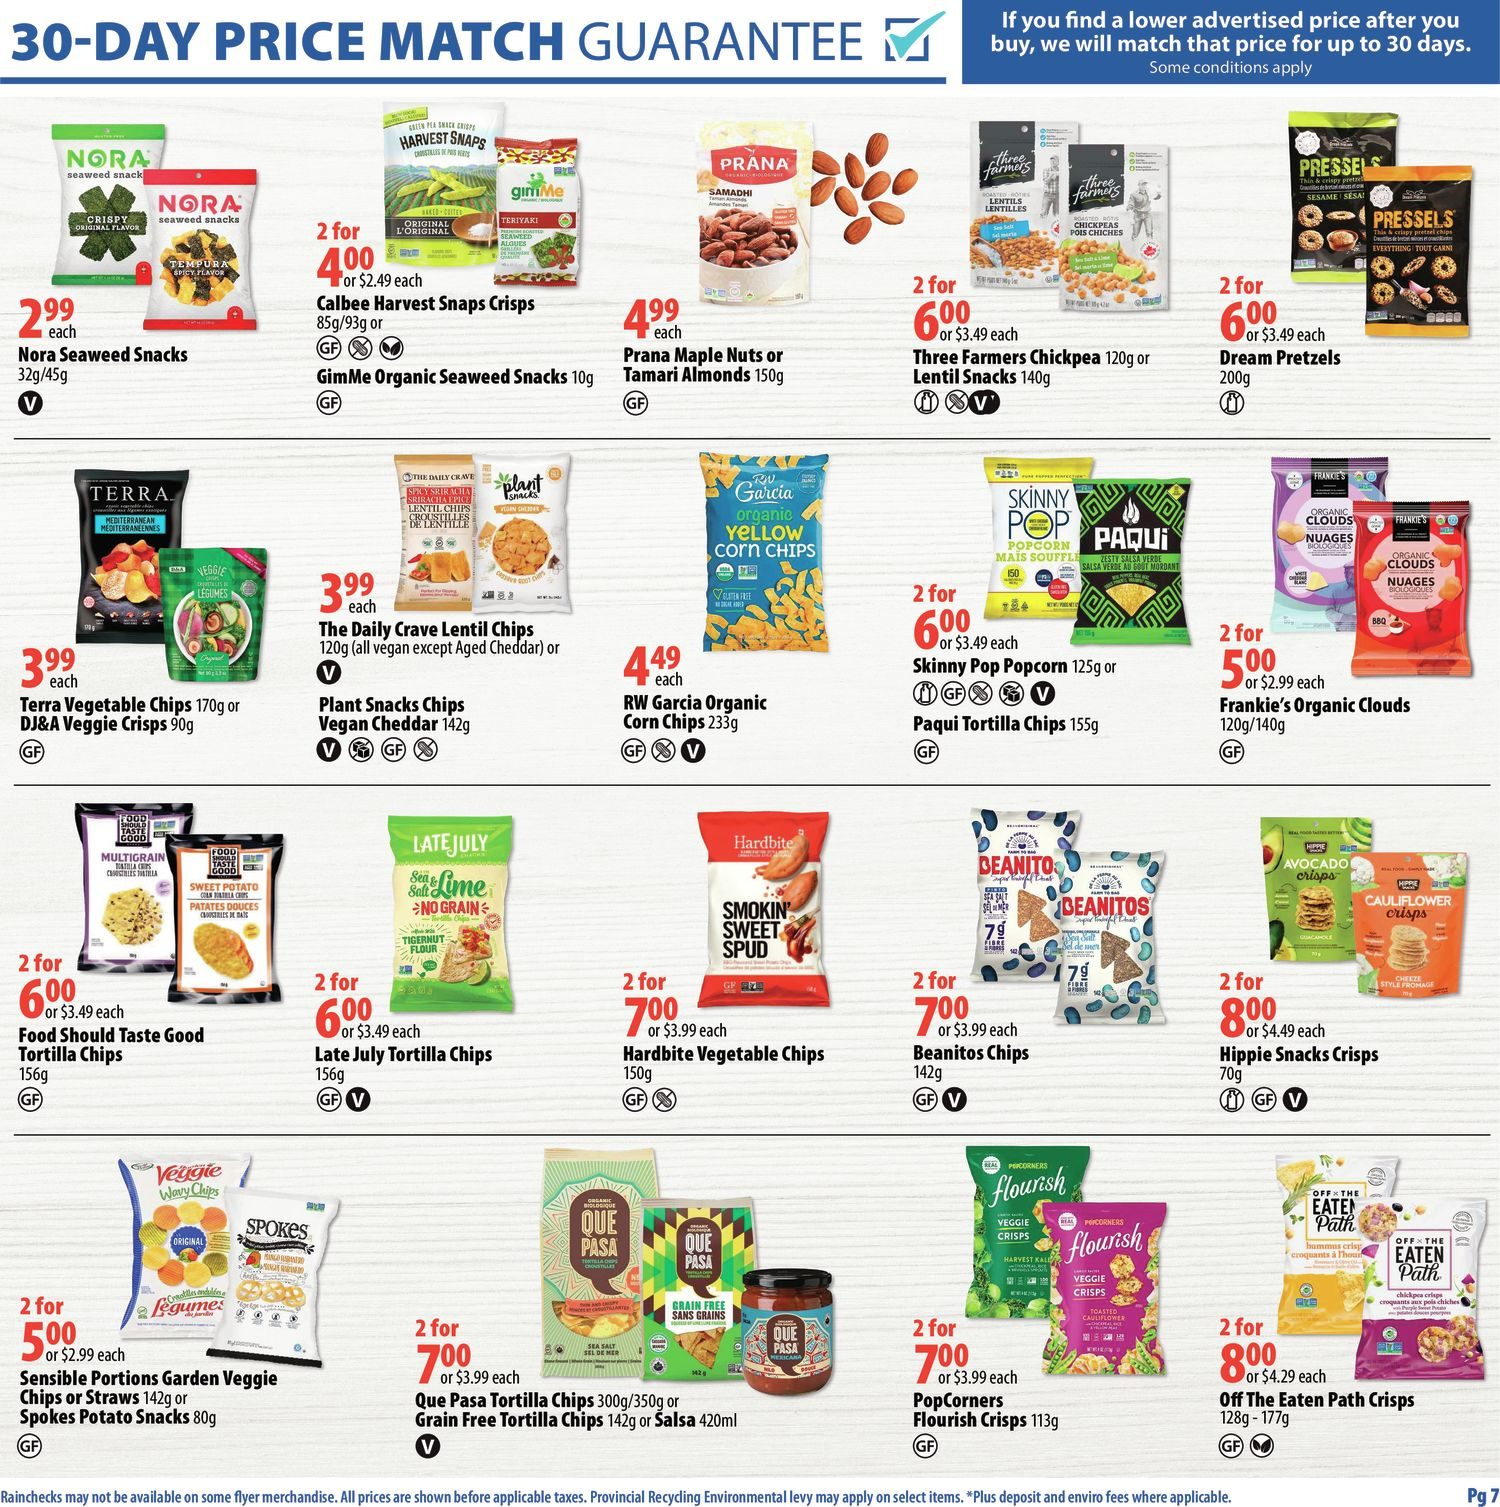 London Drugs - Mindful Choices - Choices To Support Your Lifestyle - Page 7